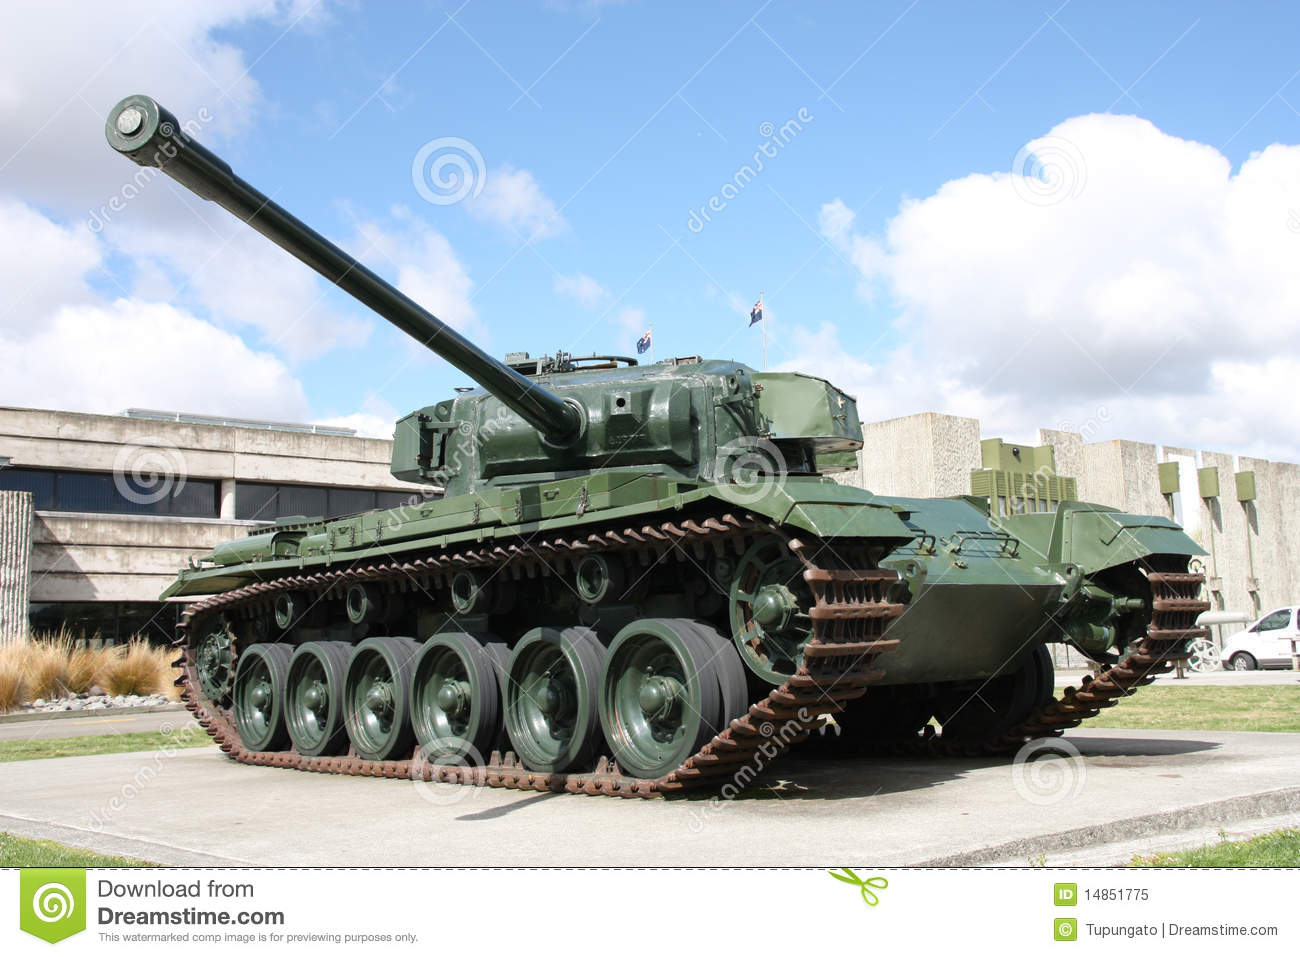 Battle tank - Centurion